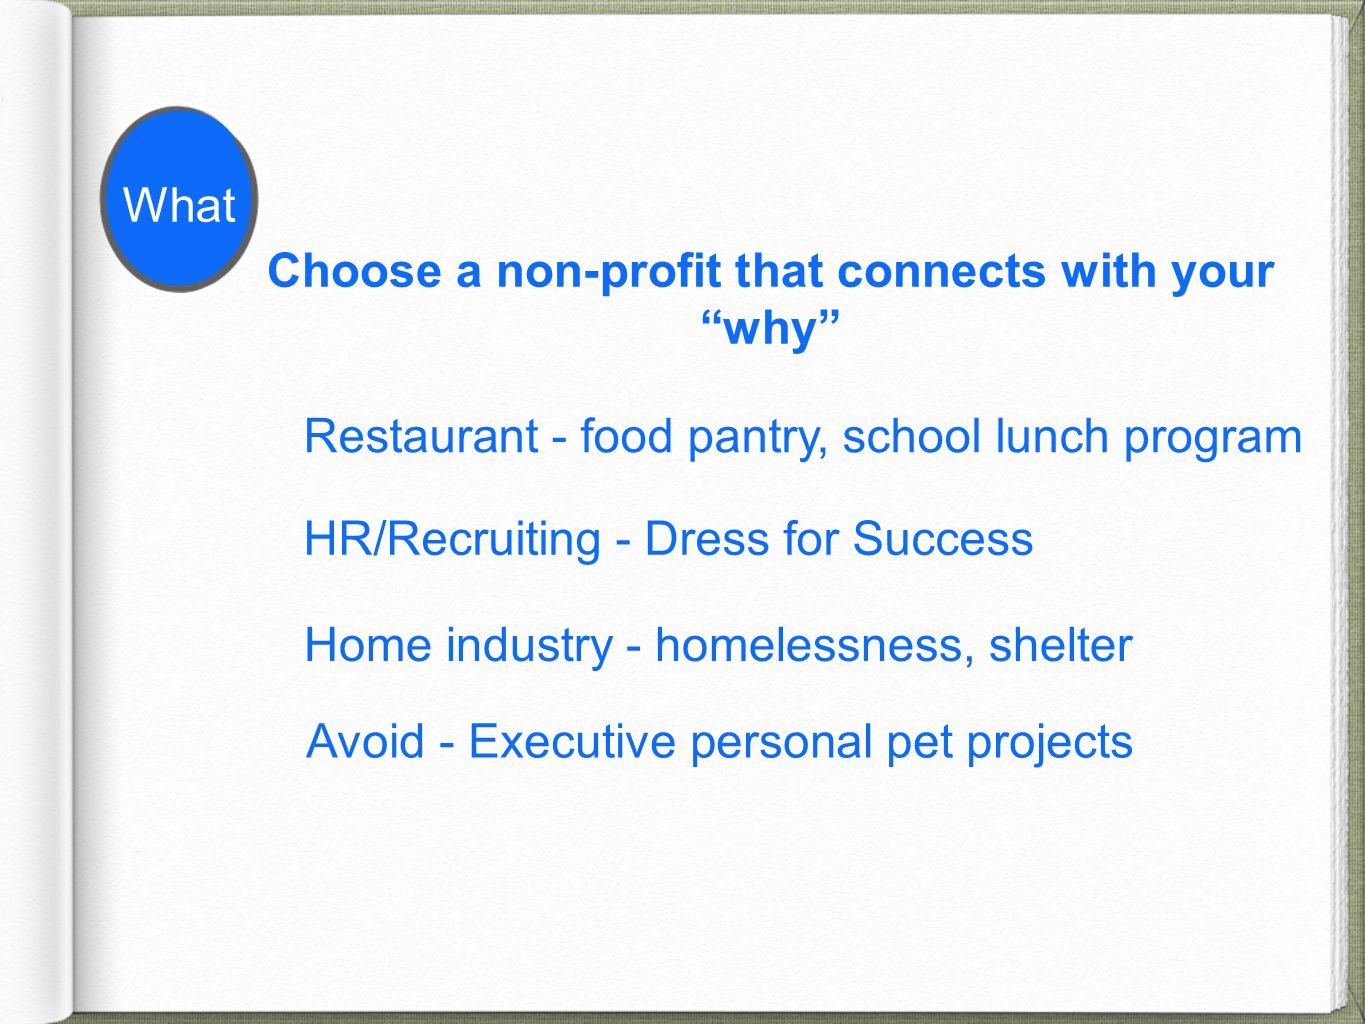 Choose a non-profit that connects with your why Restaurant - food pantry, school lunch program HR/Recruiting - Dress for Success Home industry - homelessness, shelter Avoid - Executive personal pet projects What